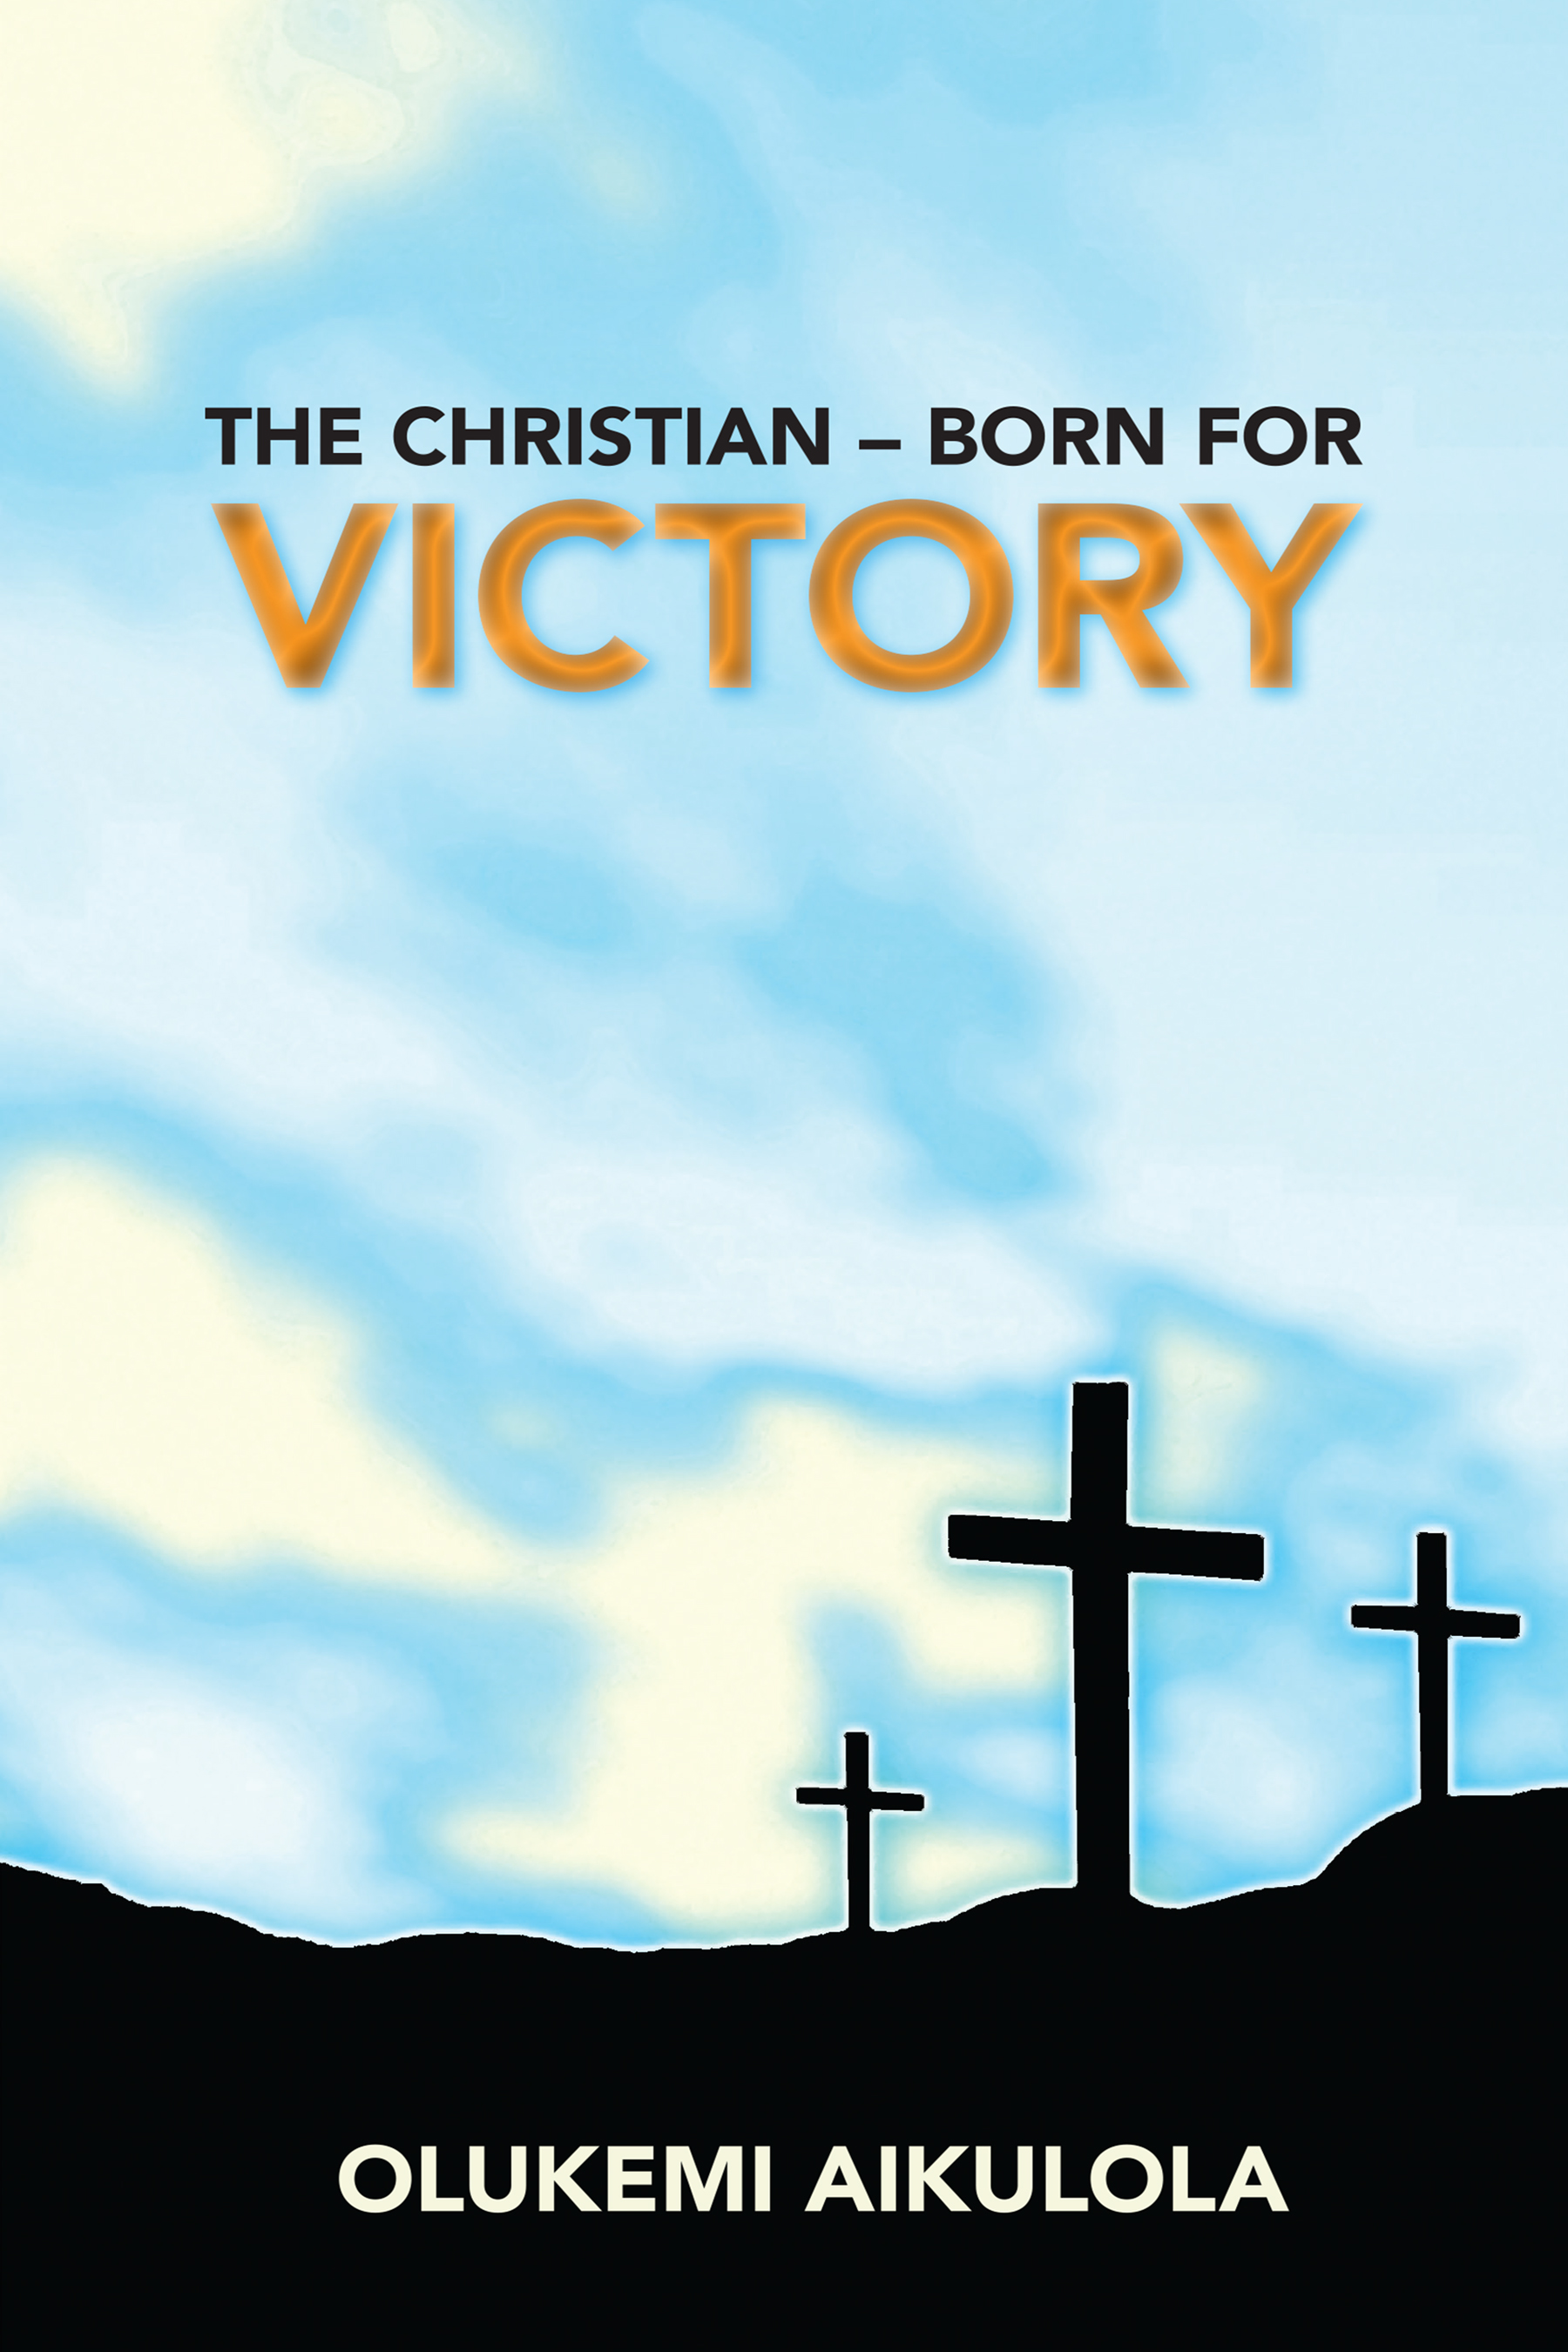 The Christian – Born For Victory